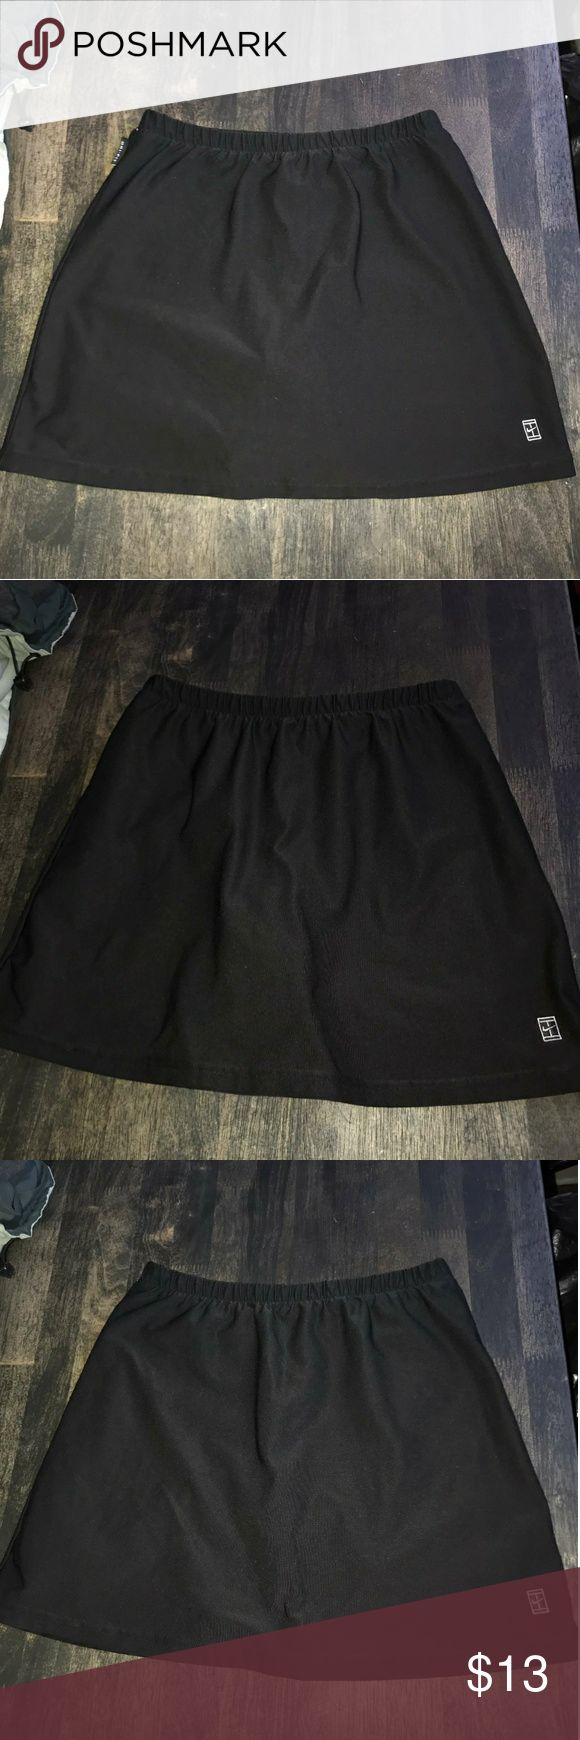 "Nike dri fit running/tennis mini skirt Good conditions no pilling no tears no stain. Like new size xsmall (0-2)  Its 13.5"" in length. Super cute Fits well with followimg measurements  Waist 24-26 